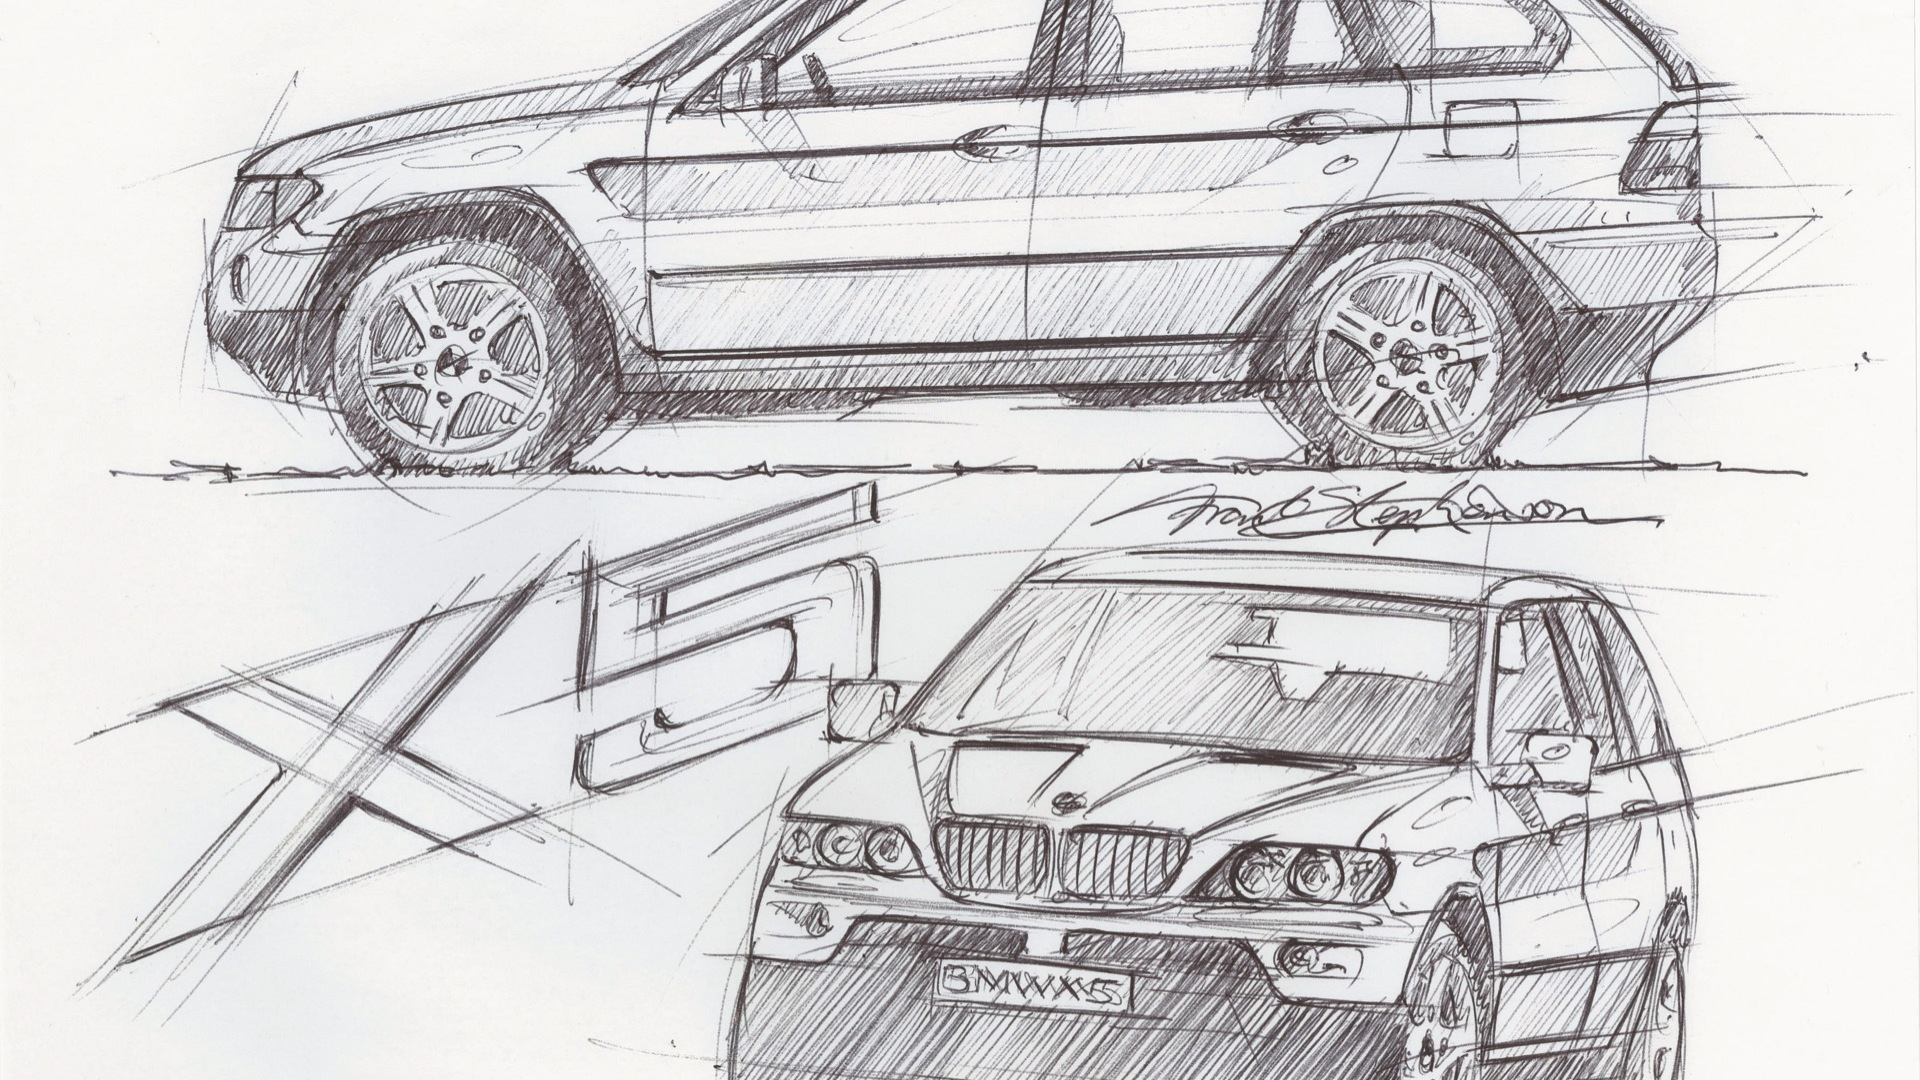 Frank Stephenson BMW X5 sketch